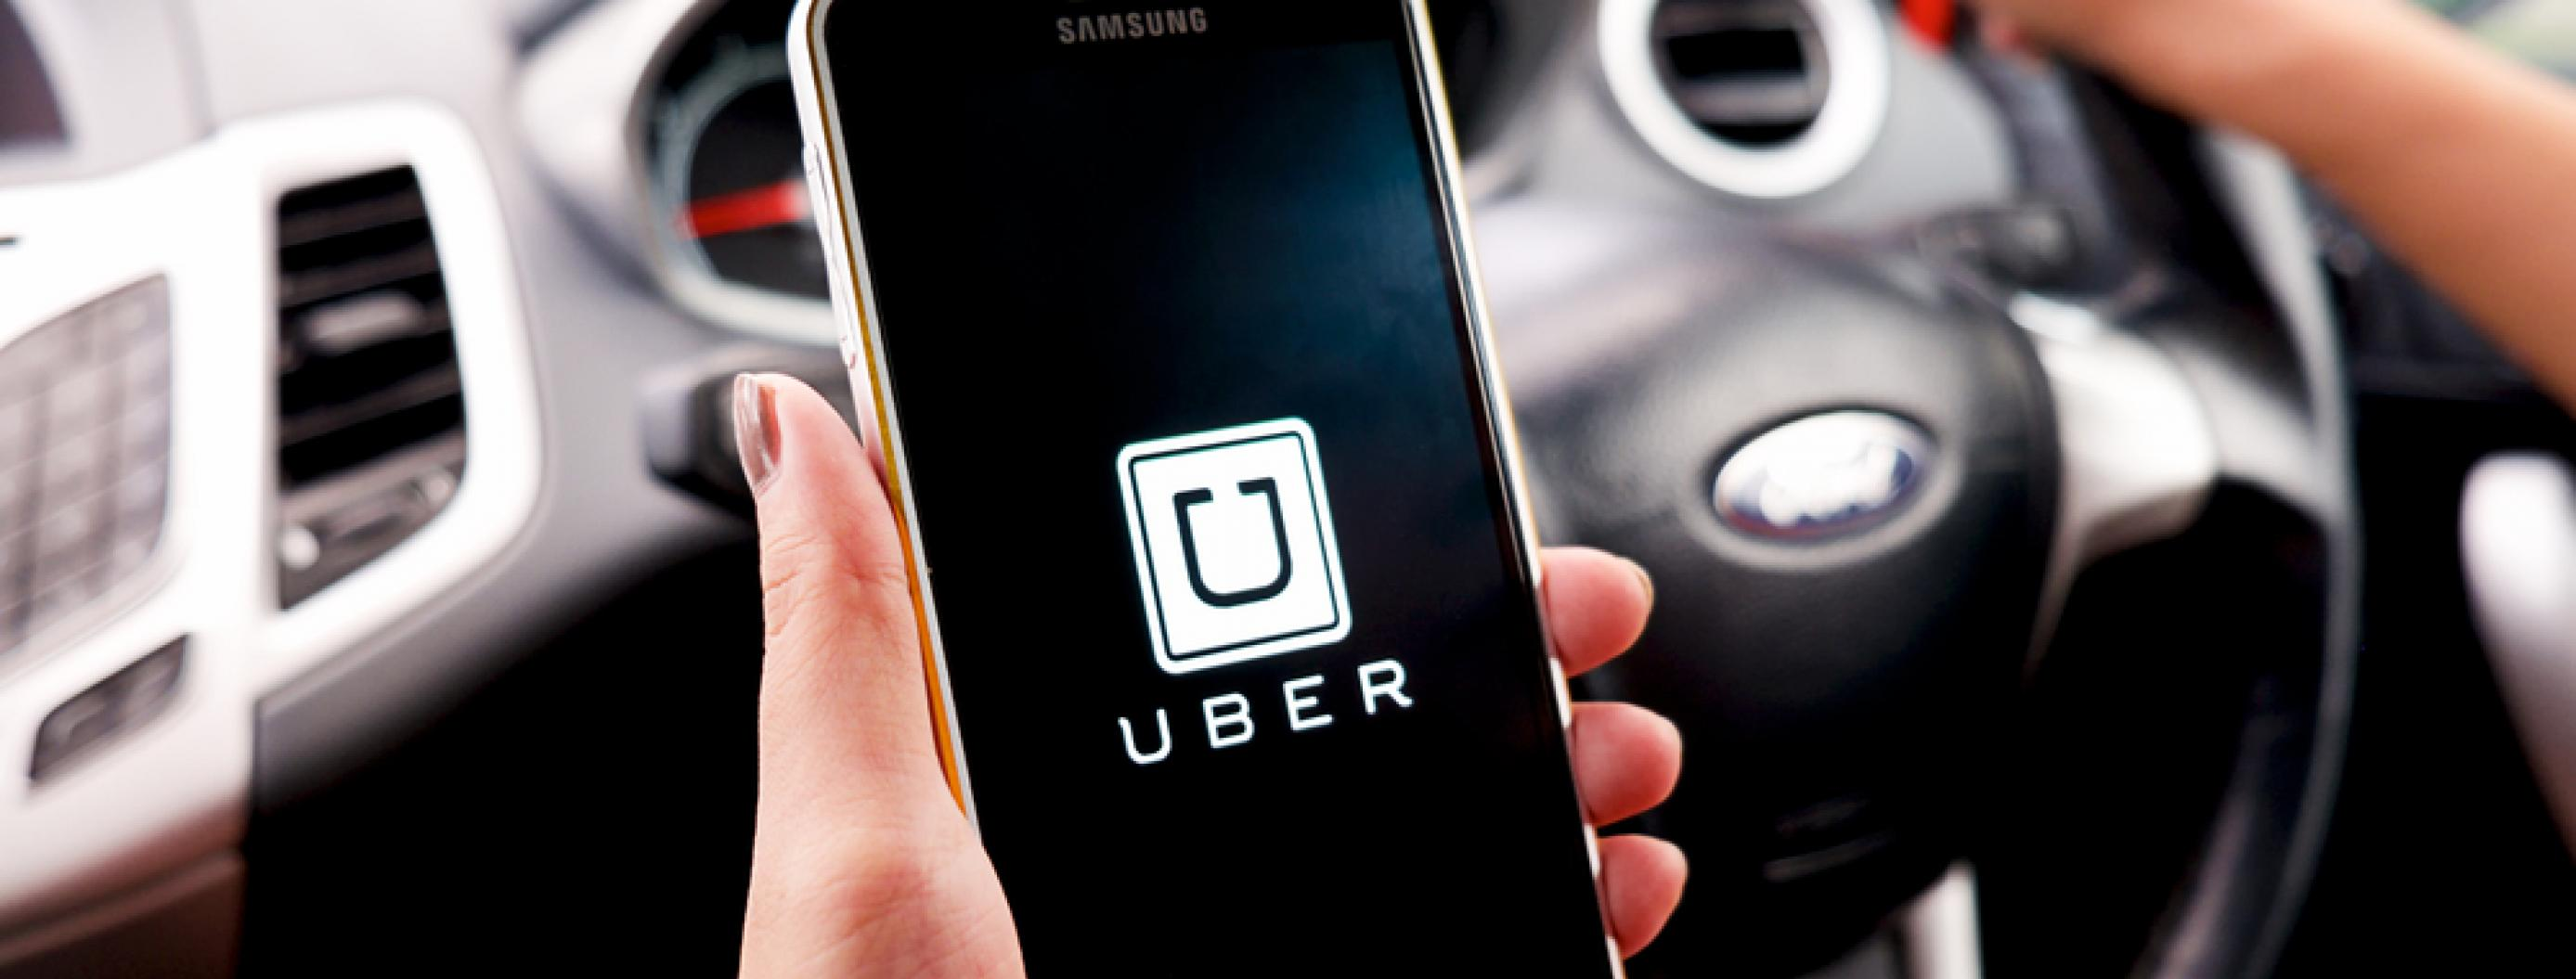 Europe's Highest Court Classifies Uber as Transport Service